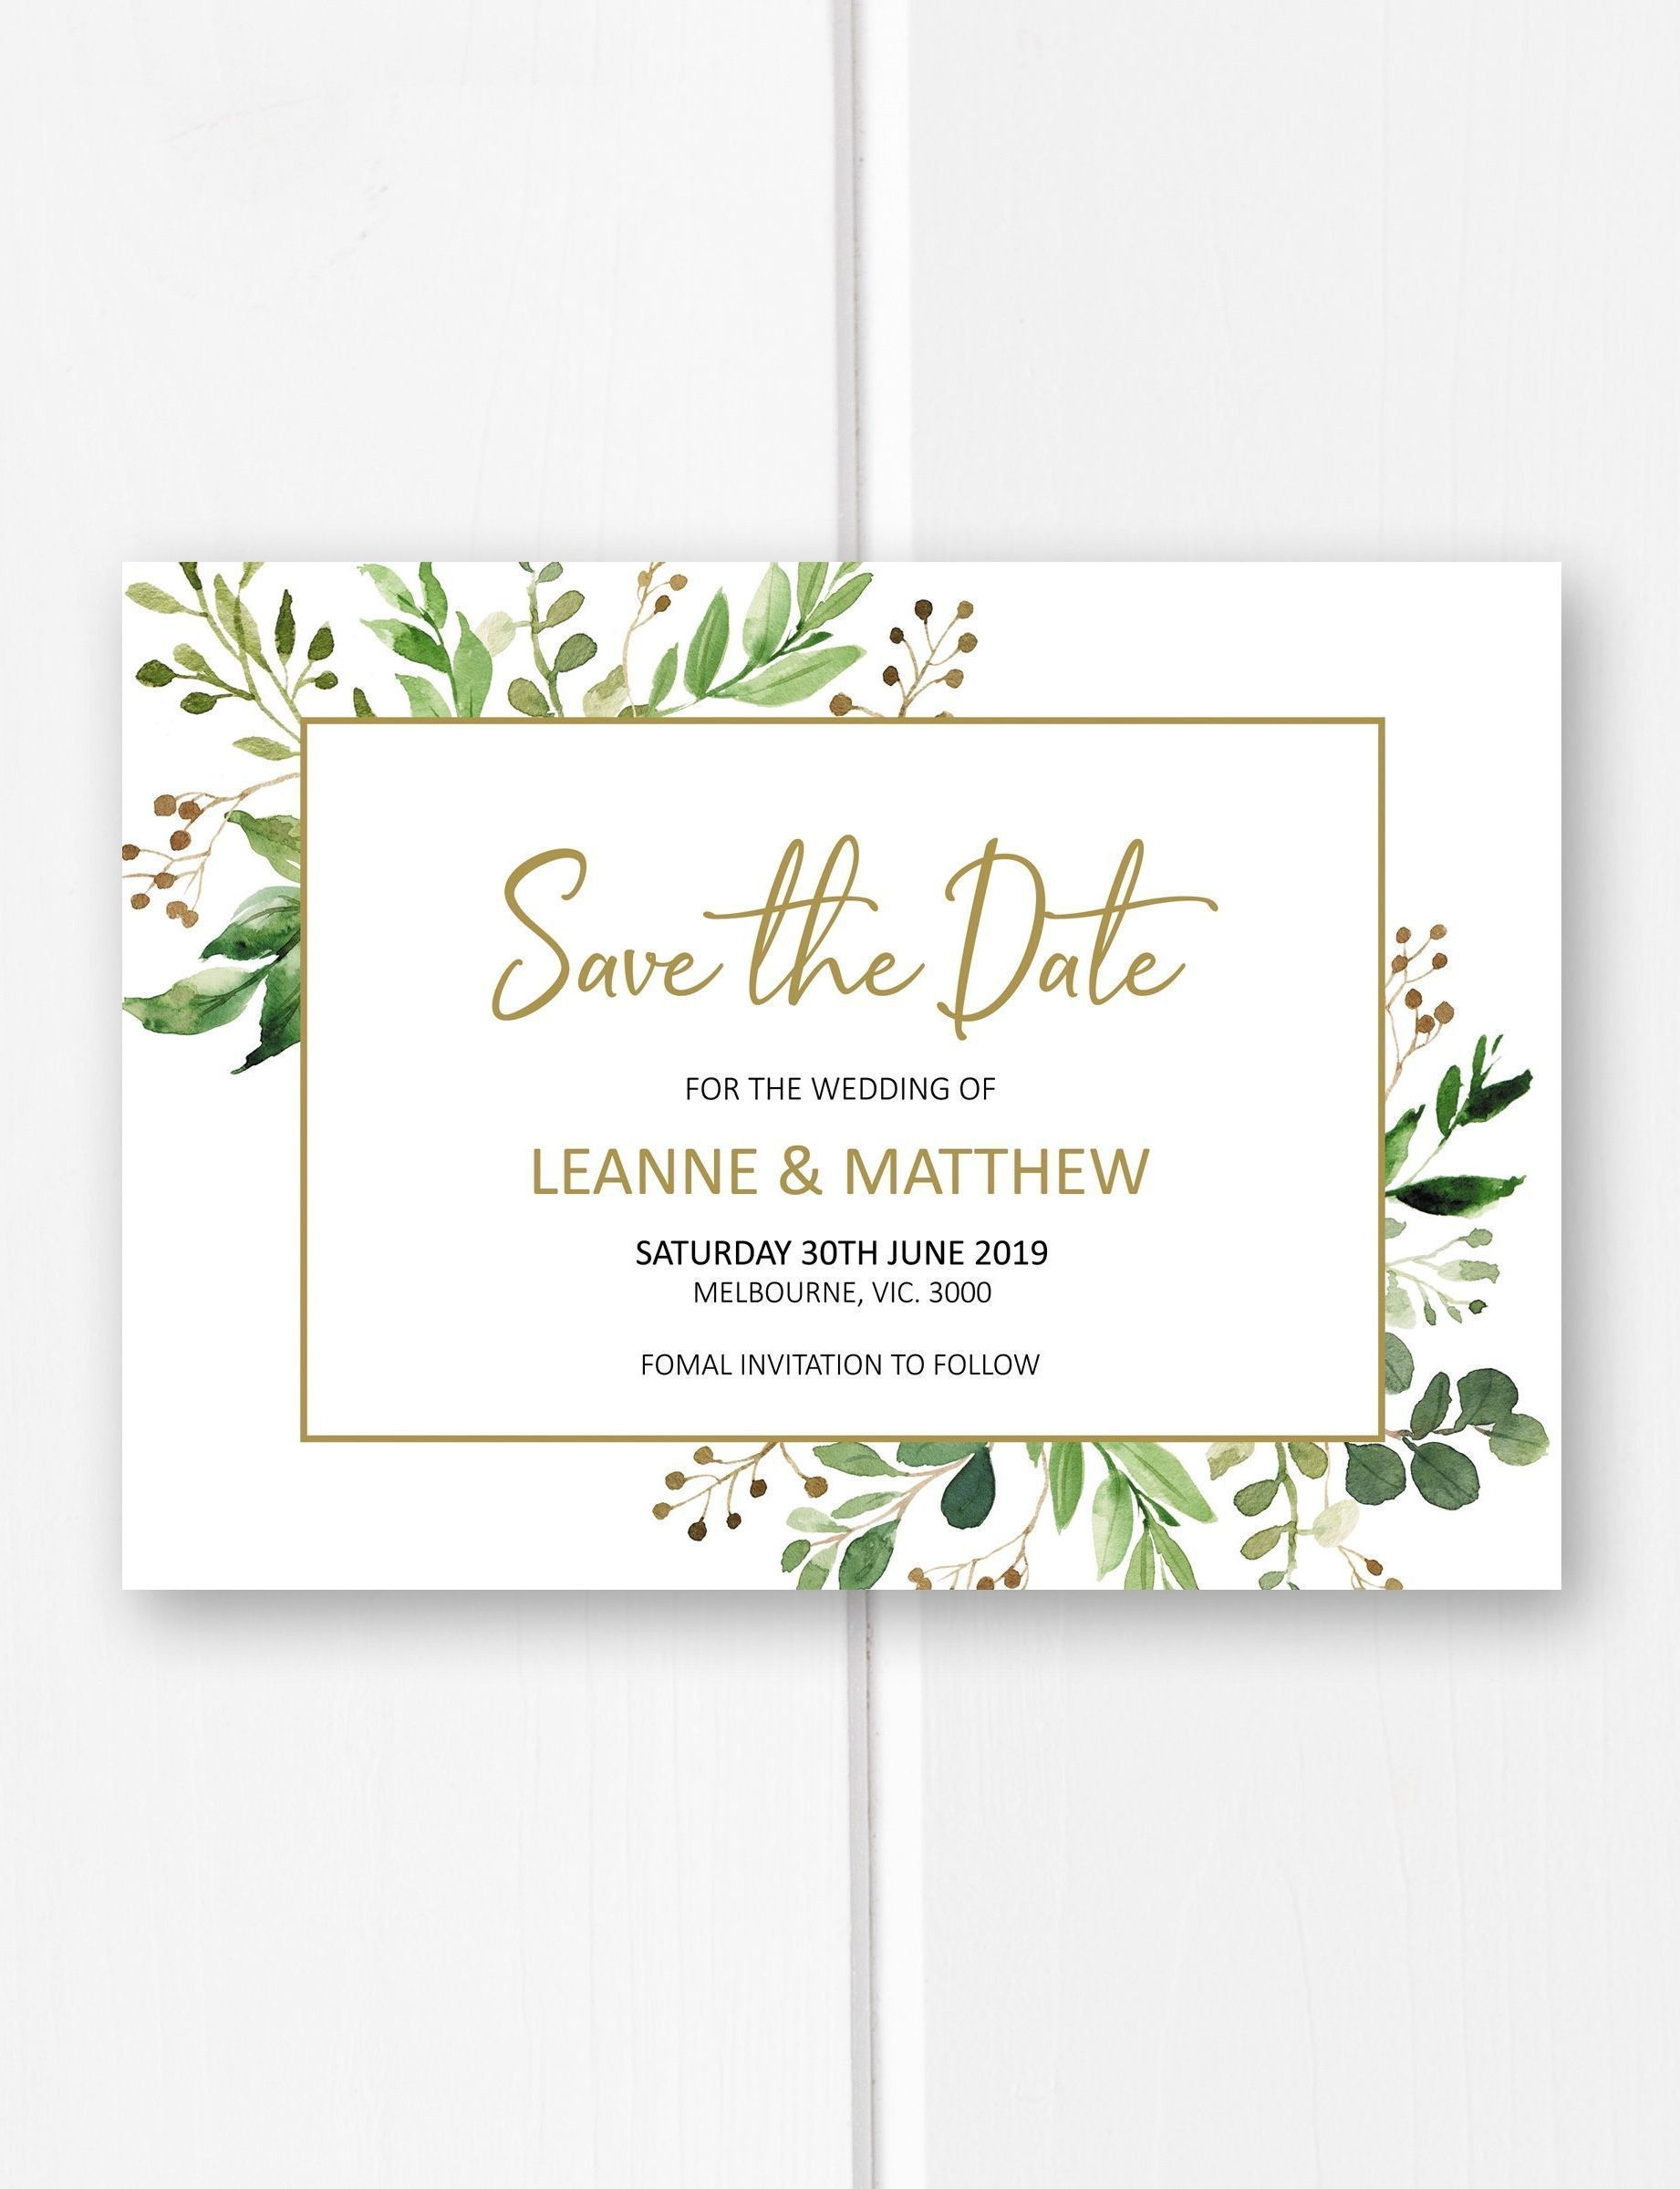 Wedding save the date cards printable garden wedding ideas gold save the date invitations greenery invites from pink summer designs on etsy weddingideas